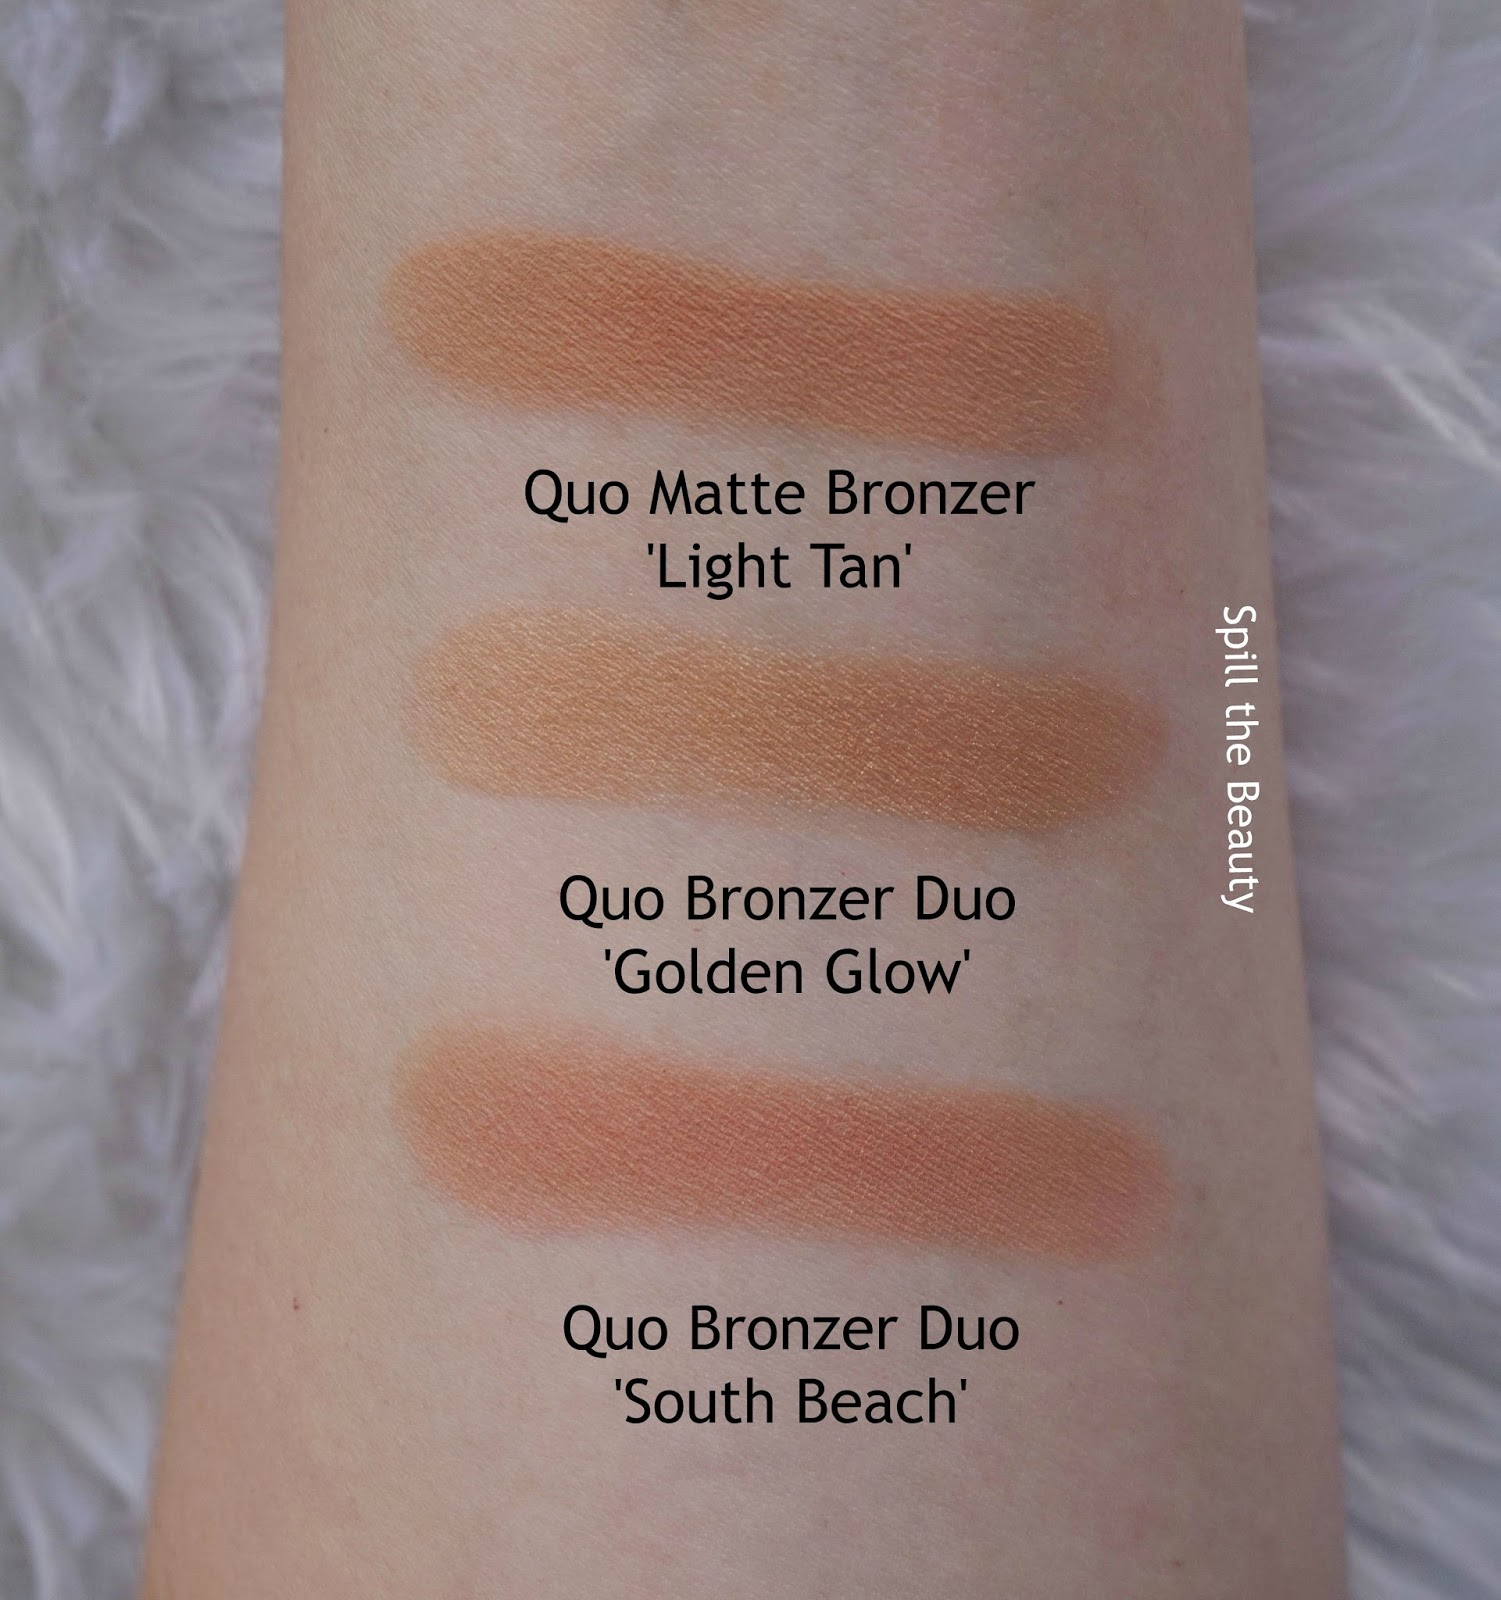 quo 2017 makeup review swatches quo bronzer duo south beach golden glow matte bronzer light tan